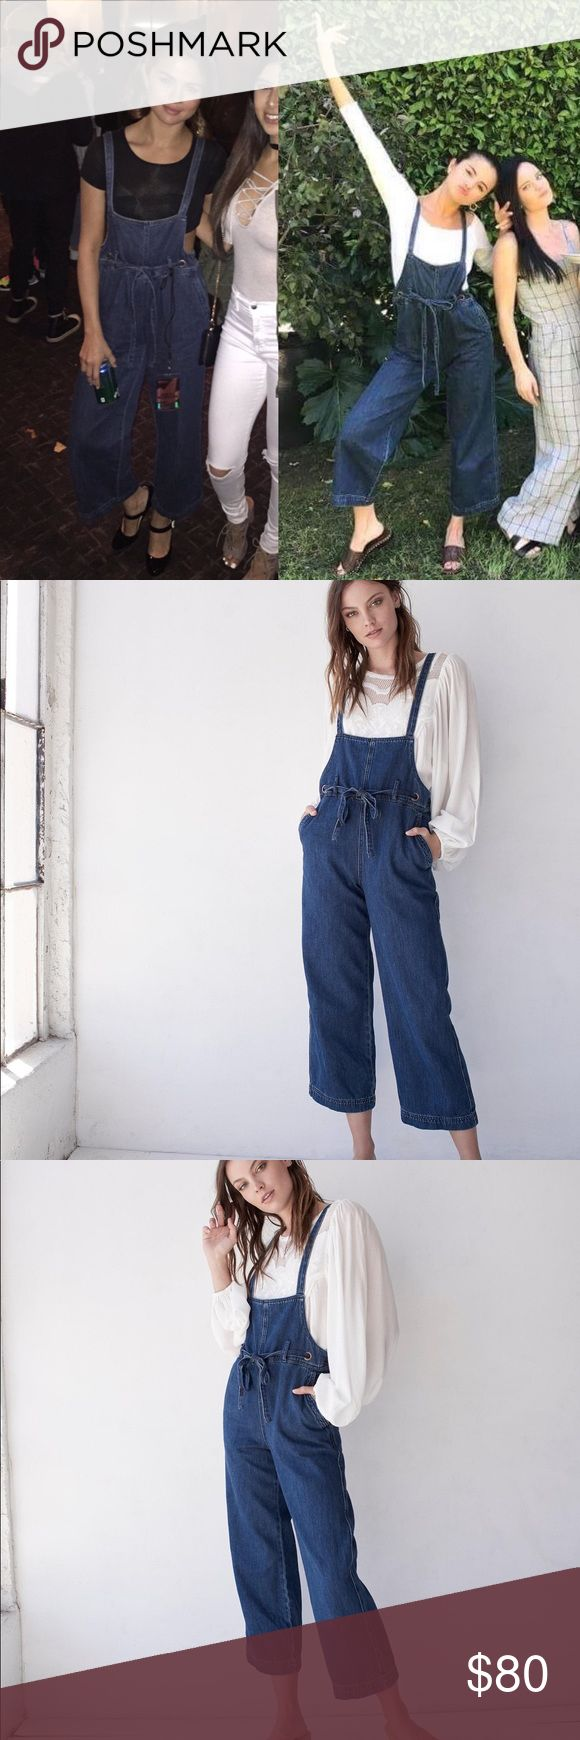 Free People Strappy Denim Overalls Selena Gomez SOLD OUT for ages now. As seen on Selena Gomez, exact match. Brand new with tags, never worn. Comes from smoke-free, pet-free home.  Cropped denim one piece featuring an adjustable drawstring waistband.  Lightweight rigid denim Crisscross strappy adjustable back Wide legs Low bib front detail Free People Jeans Overalls